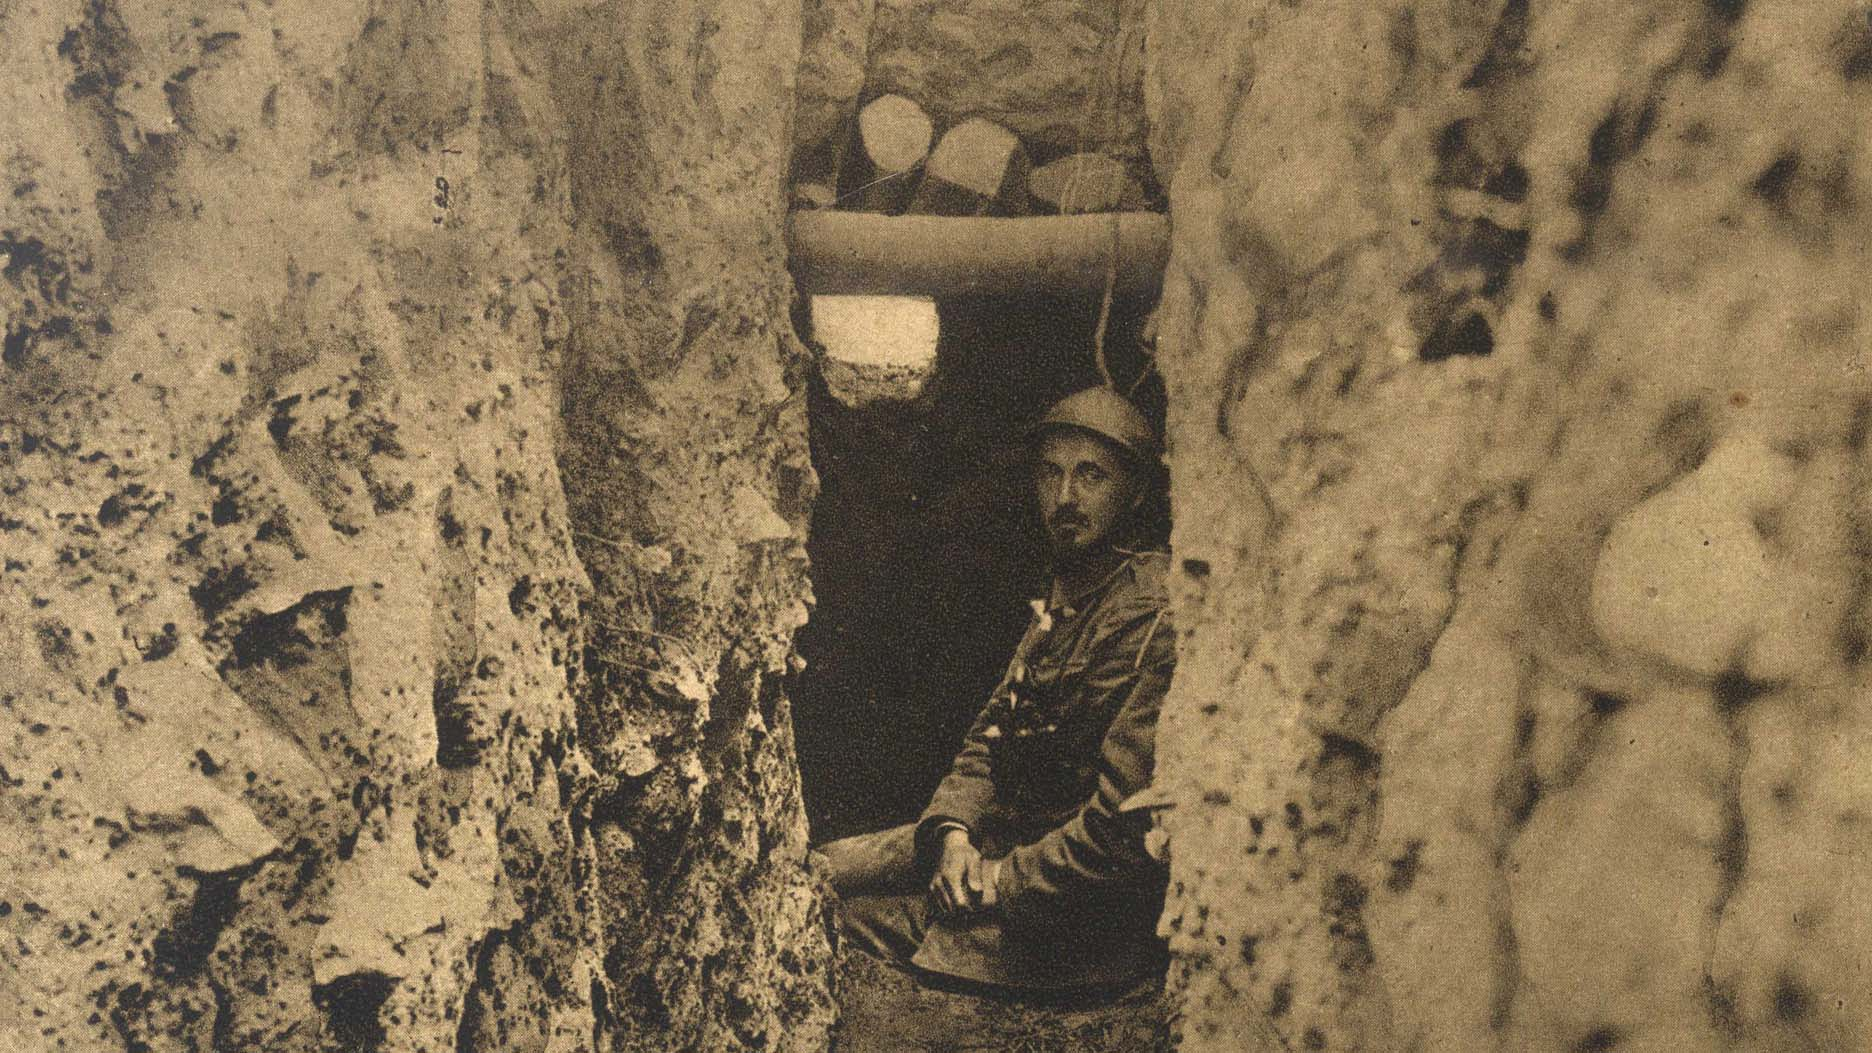 Serbian officer in an observation point near Kajmakcalan Hill (detail)